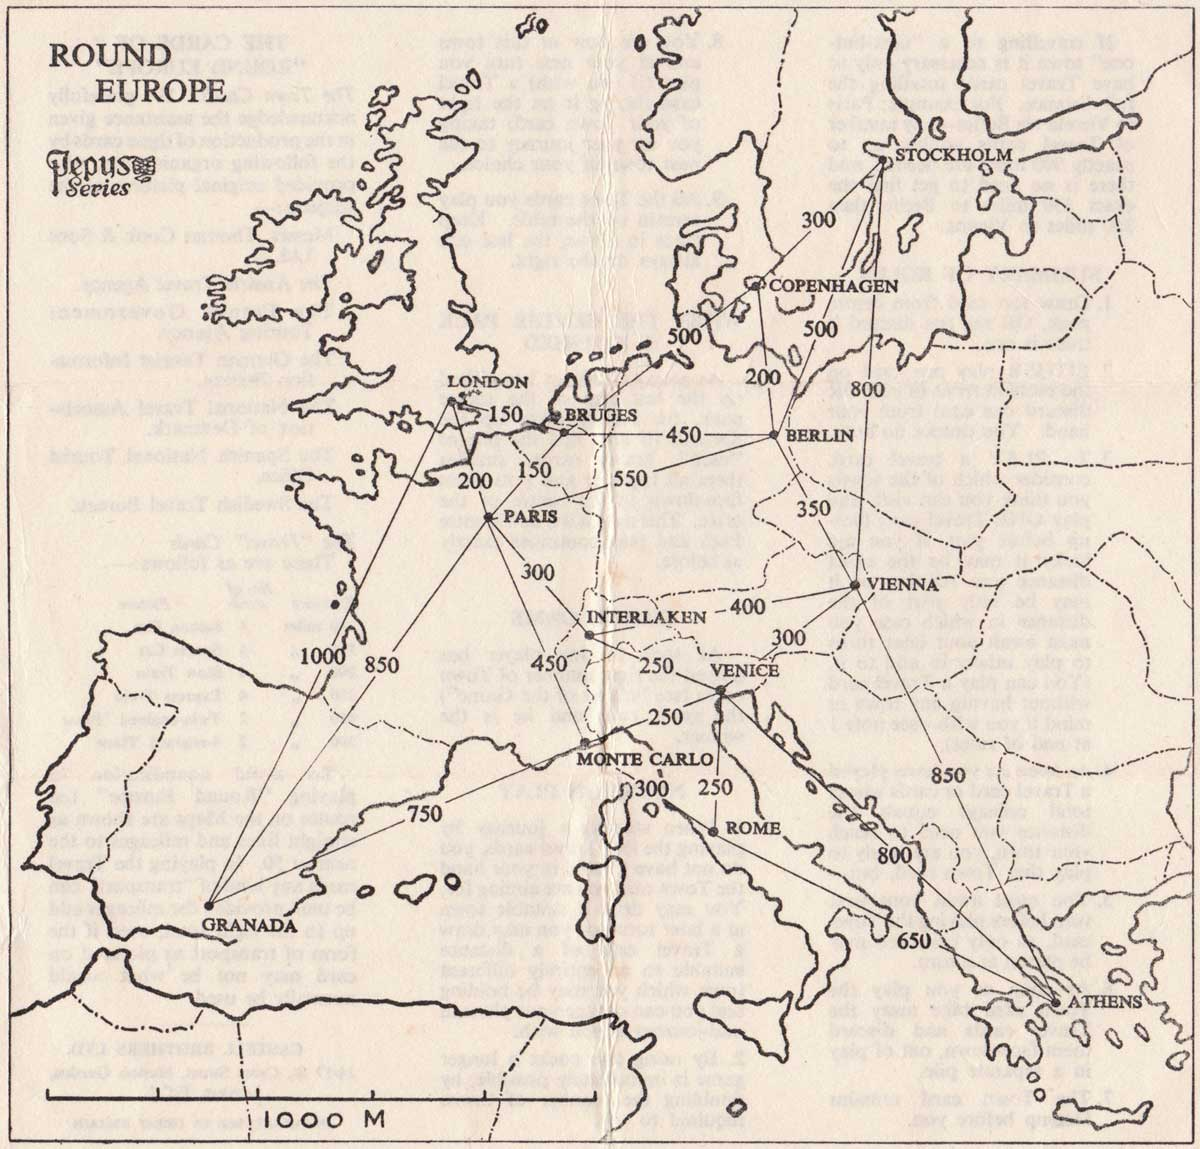 Round Europe card game by Pepys, 1958